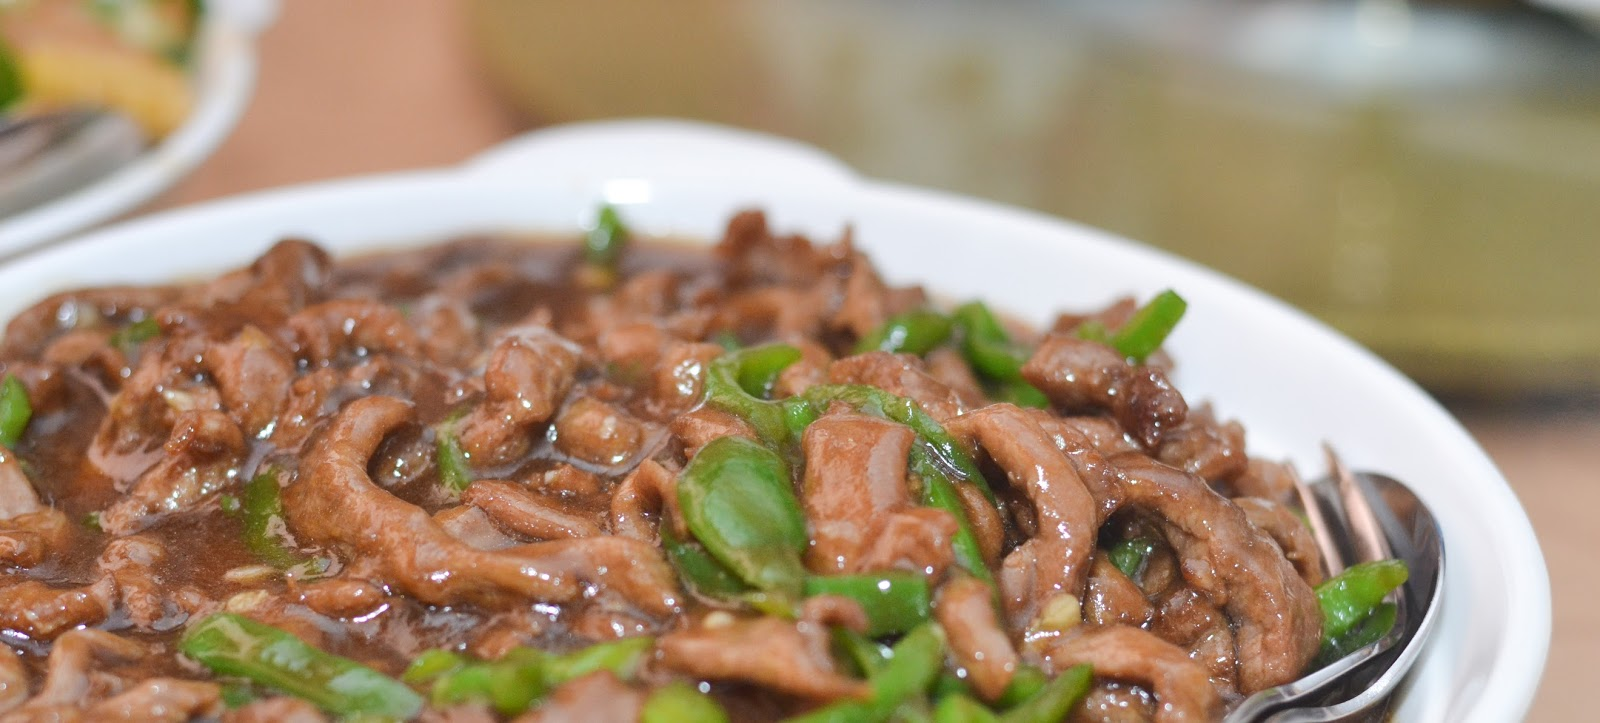 Shredded Beef Chinese Sauce